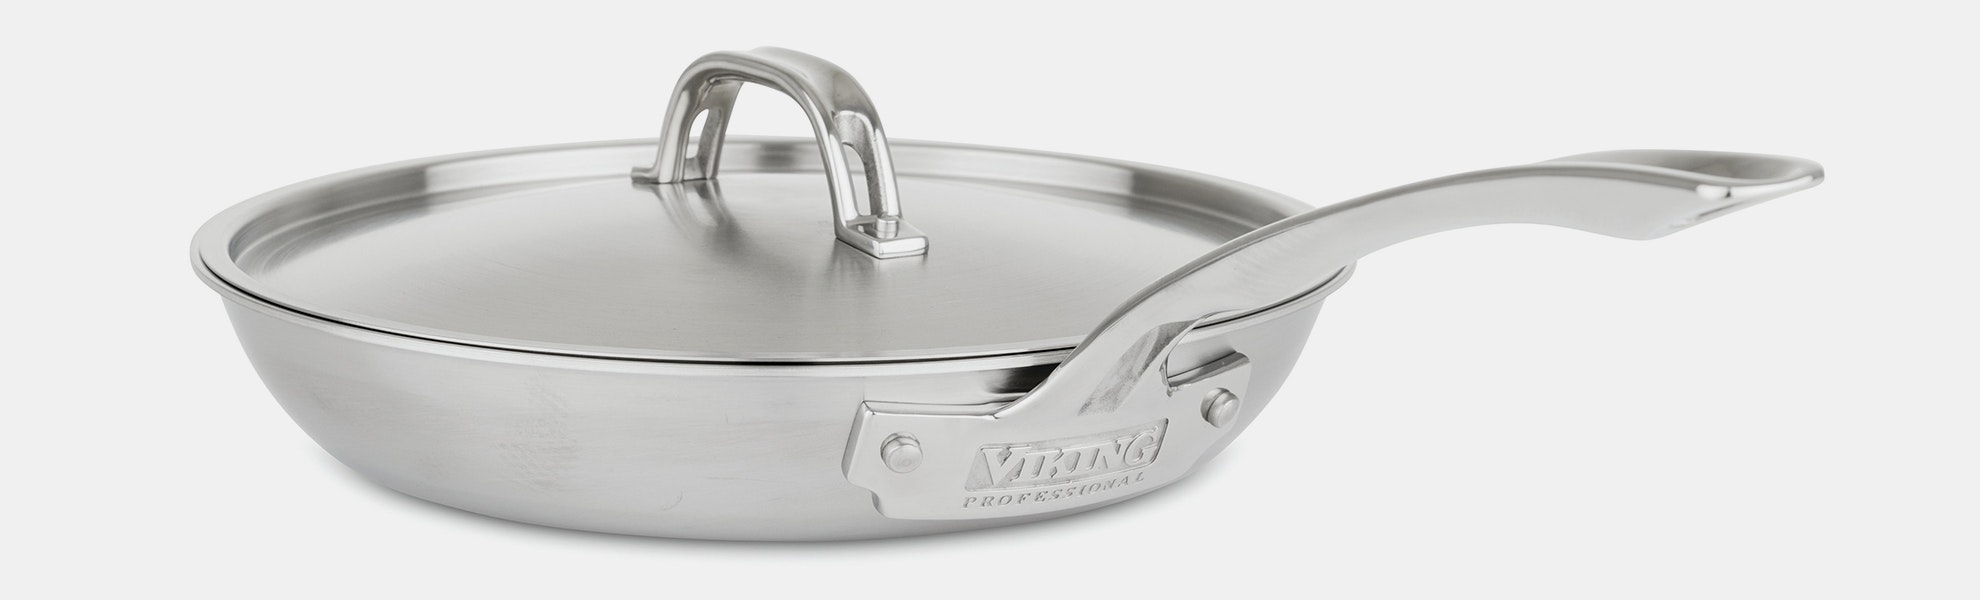 Viking 5-Ply Nonstick Covered Fry Pans